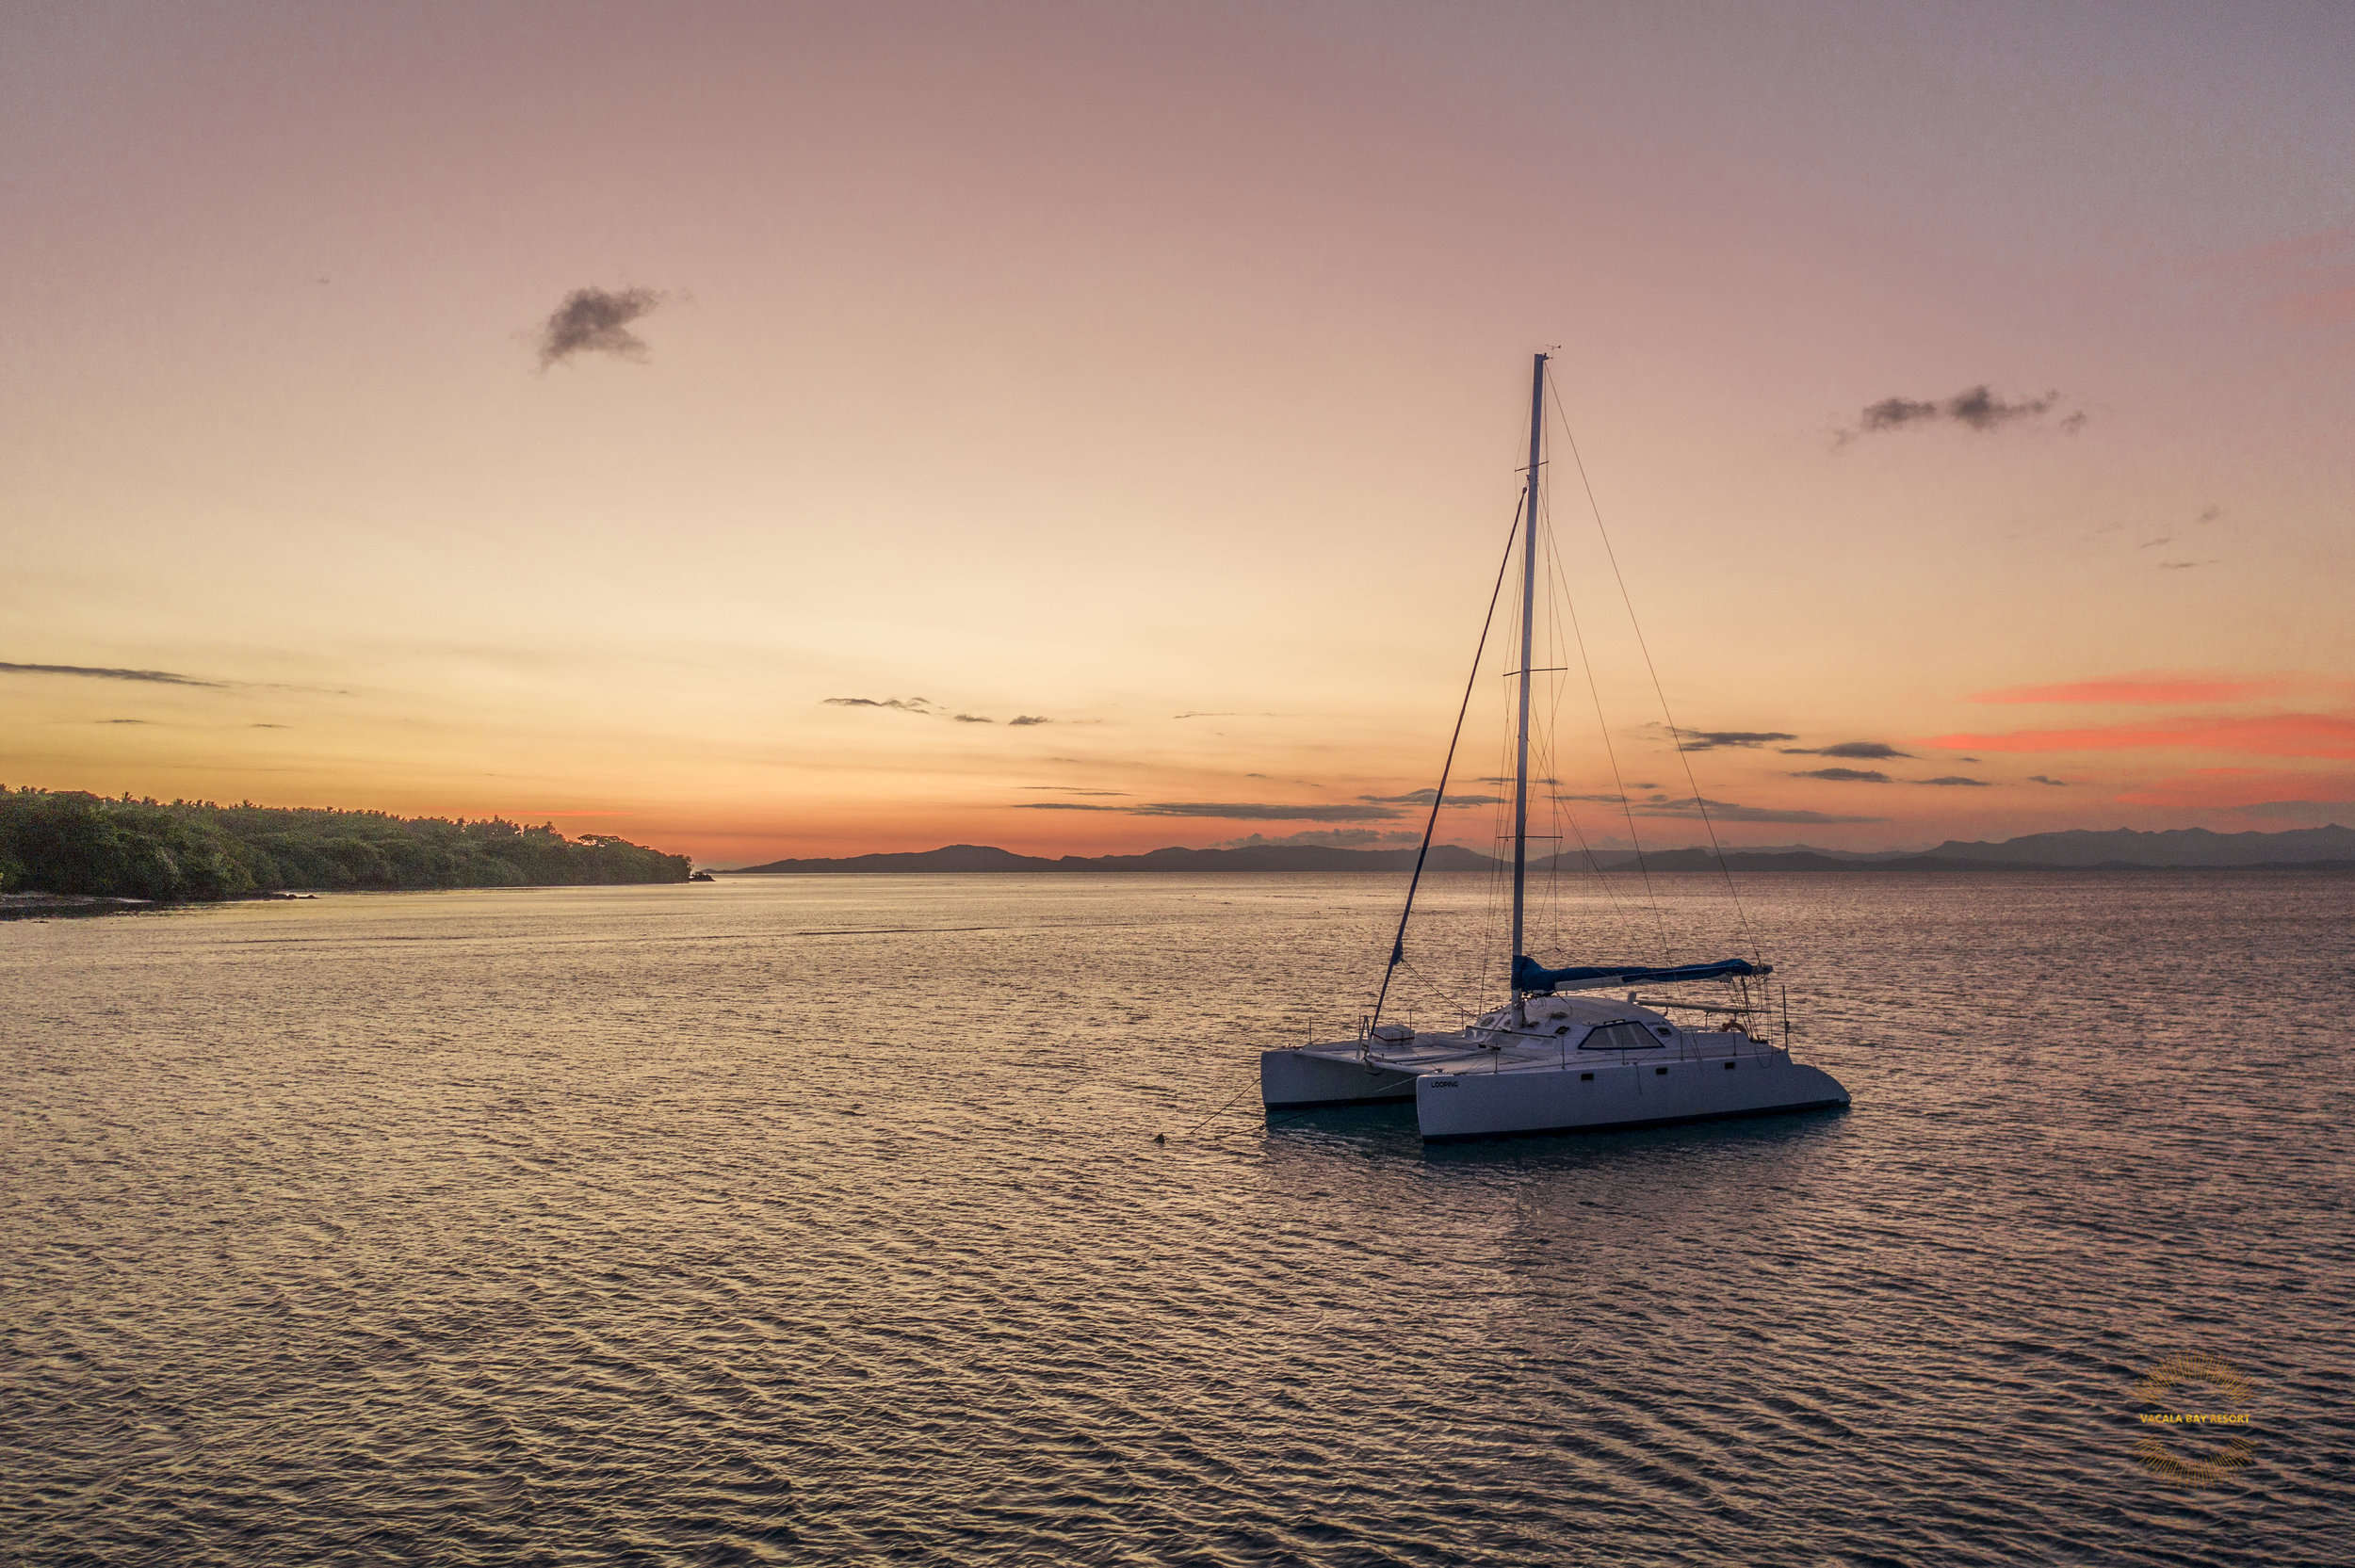 Spectacular sunsets from the aftdeck are a sight to behold…